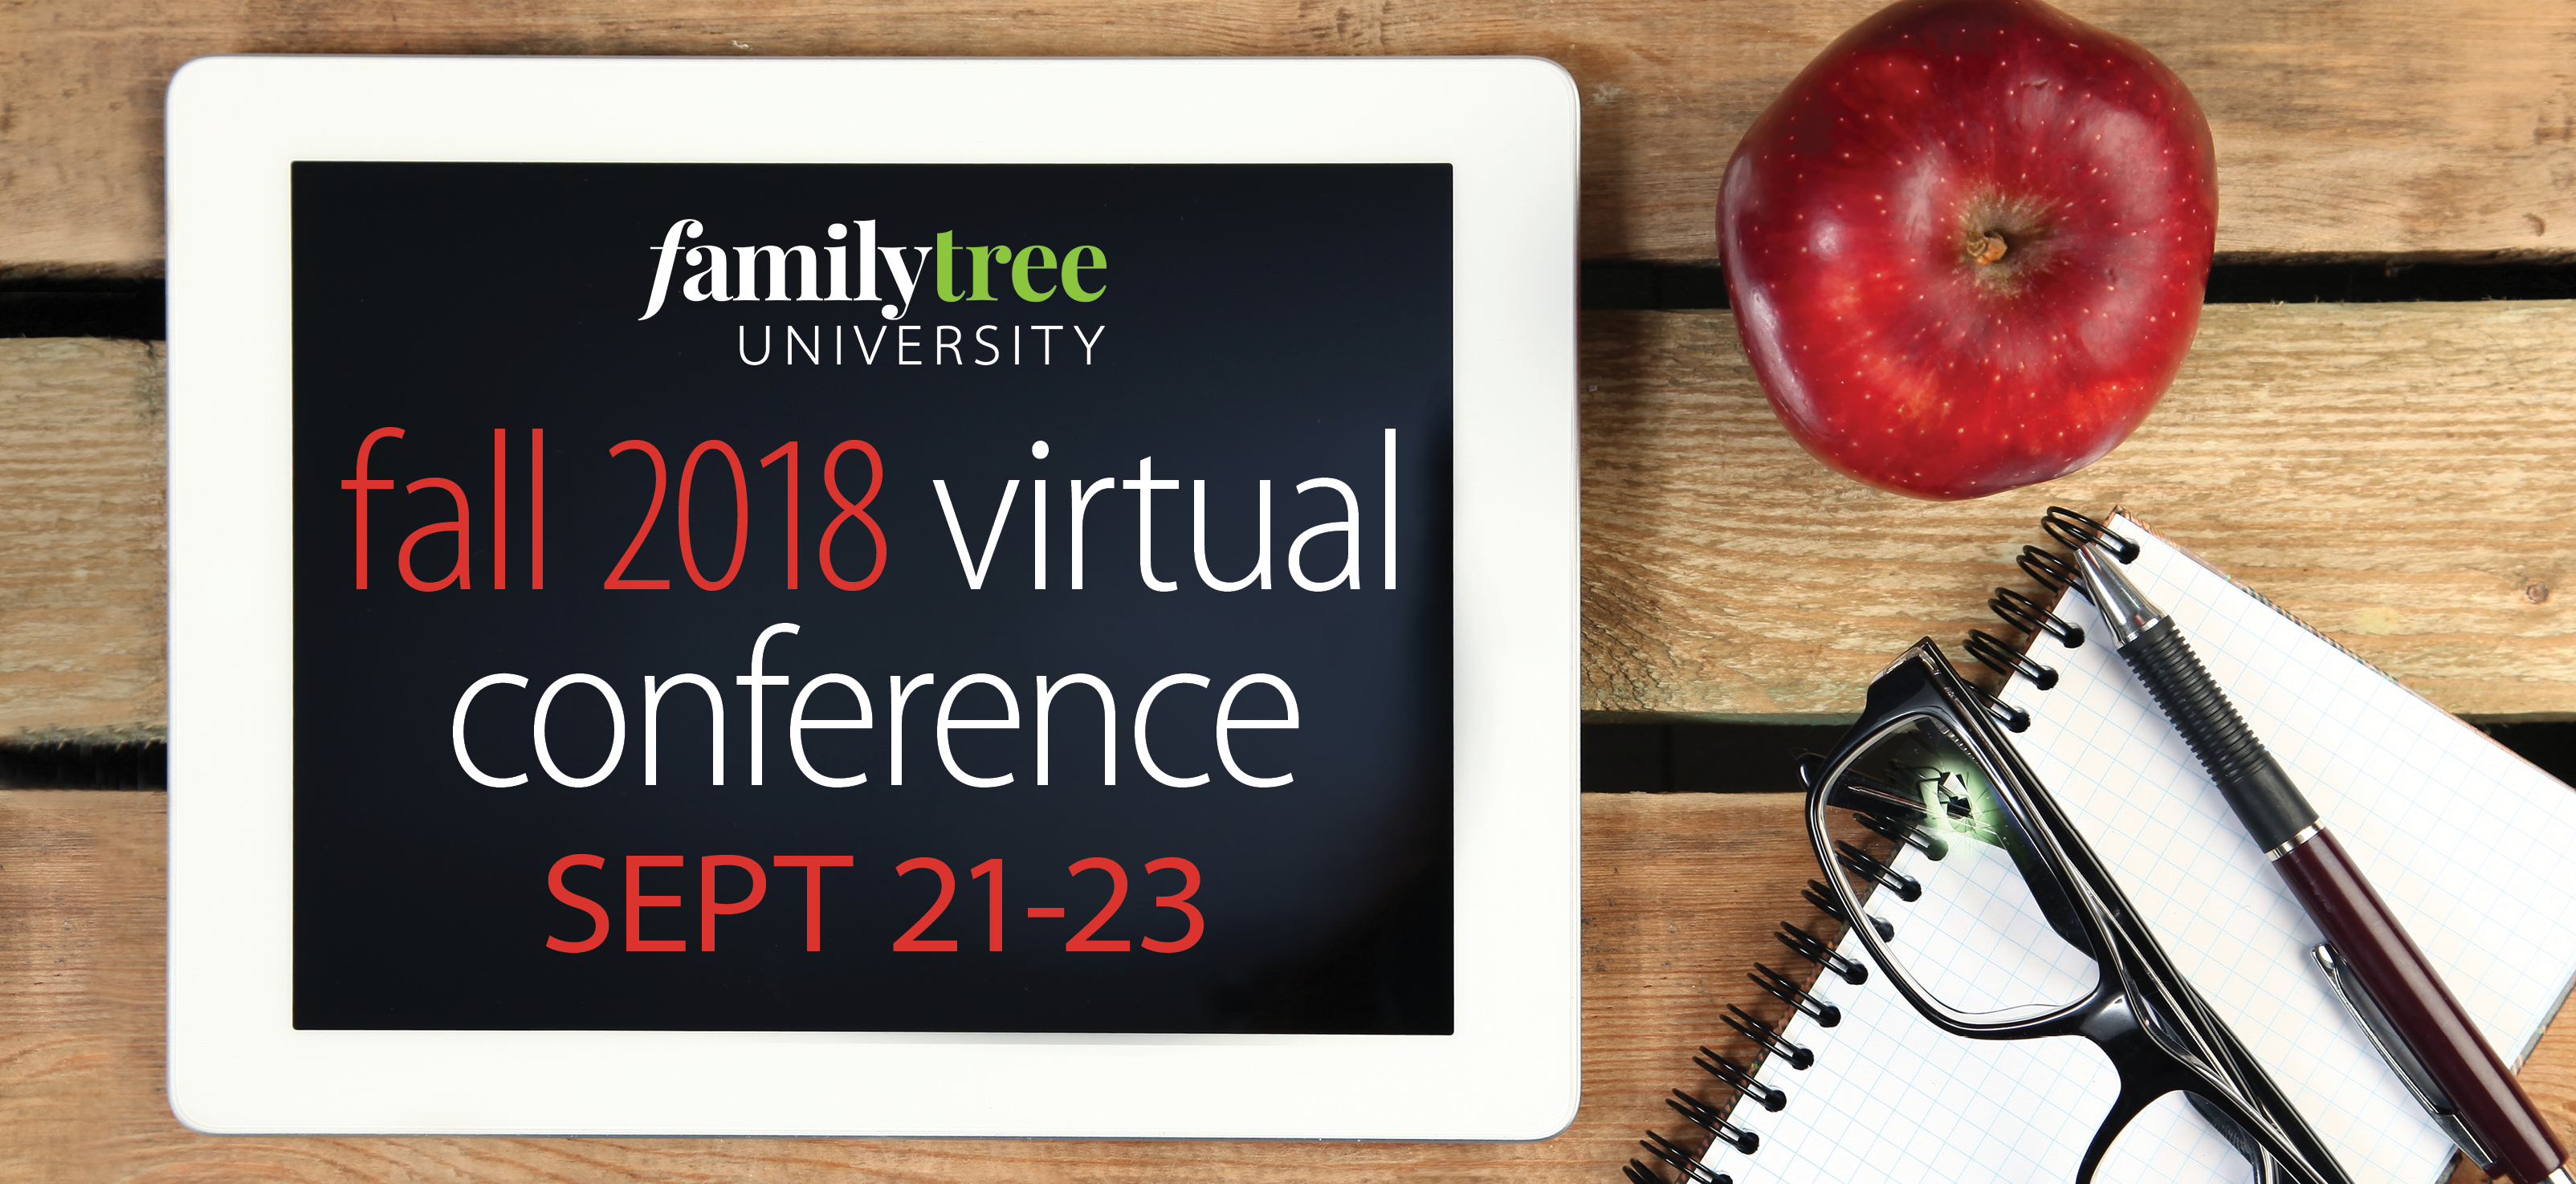 2018 Fall Virtual Genealogy Conference Online September 21st - 23rd